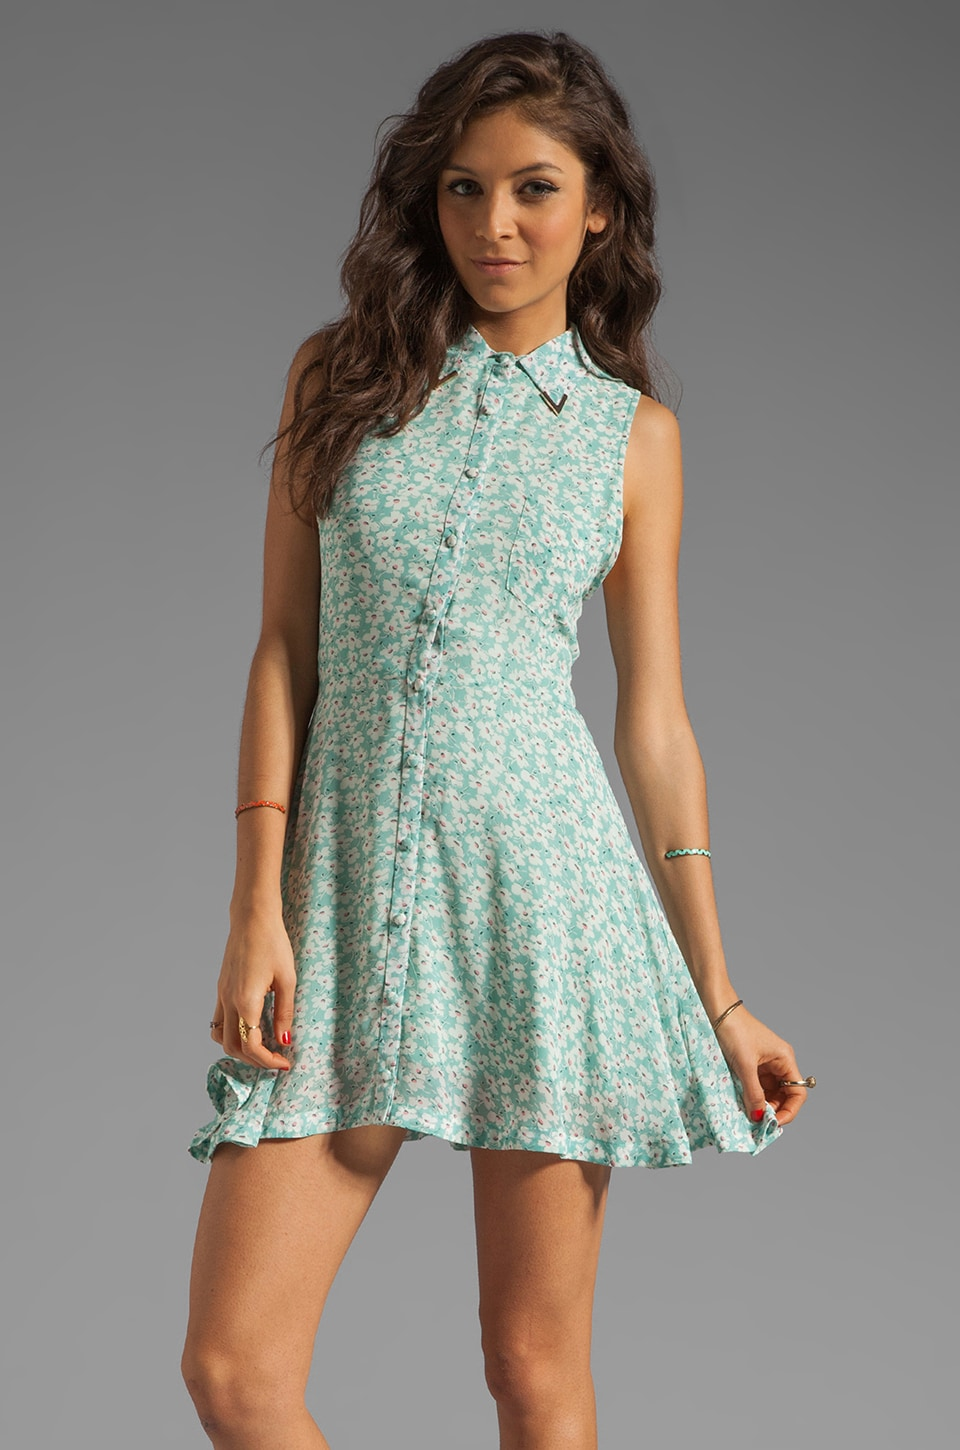 Lucca Couture Metal Tip Collared Tank Dress in Sea Breeze Floral